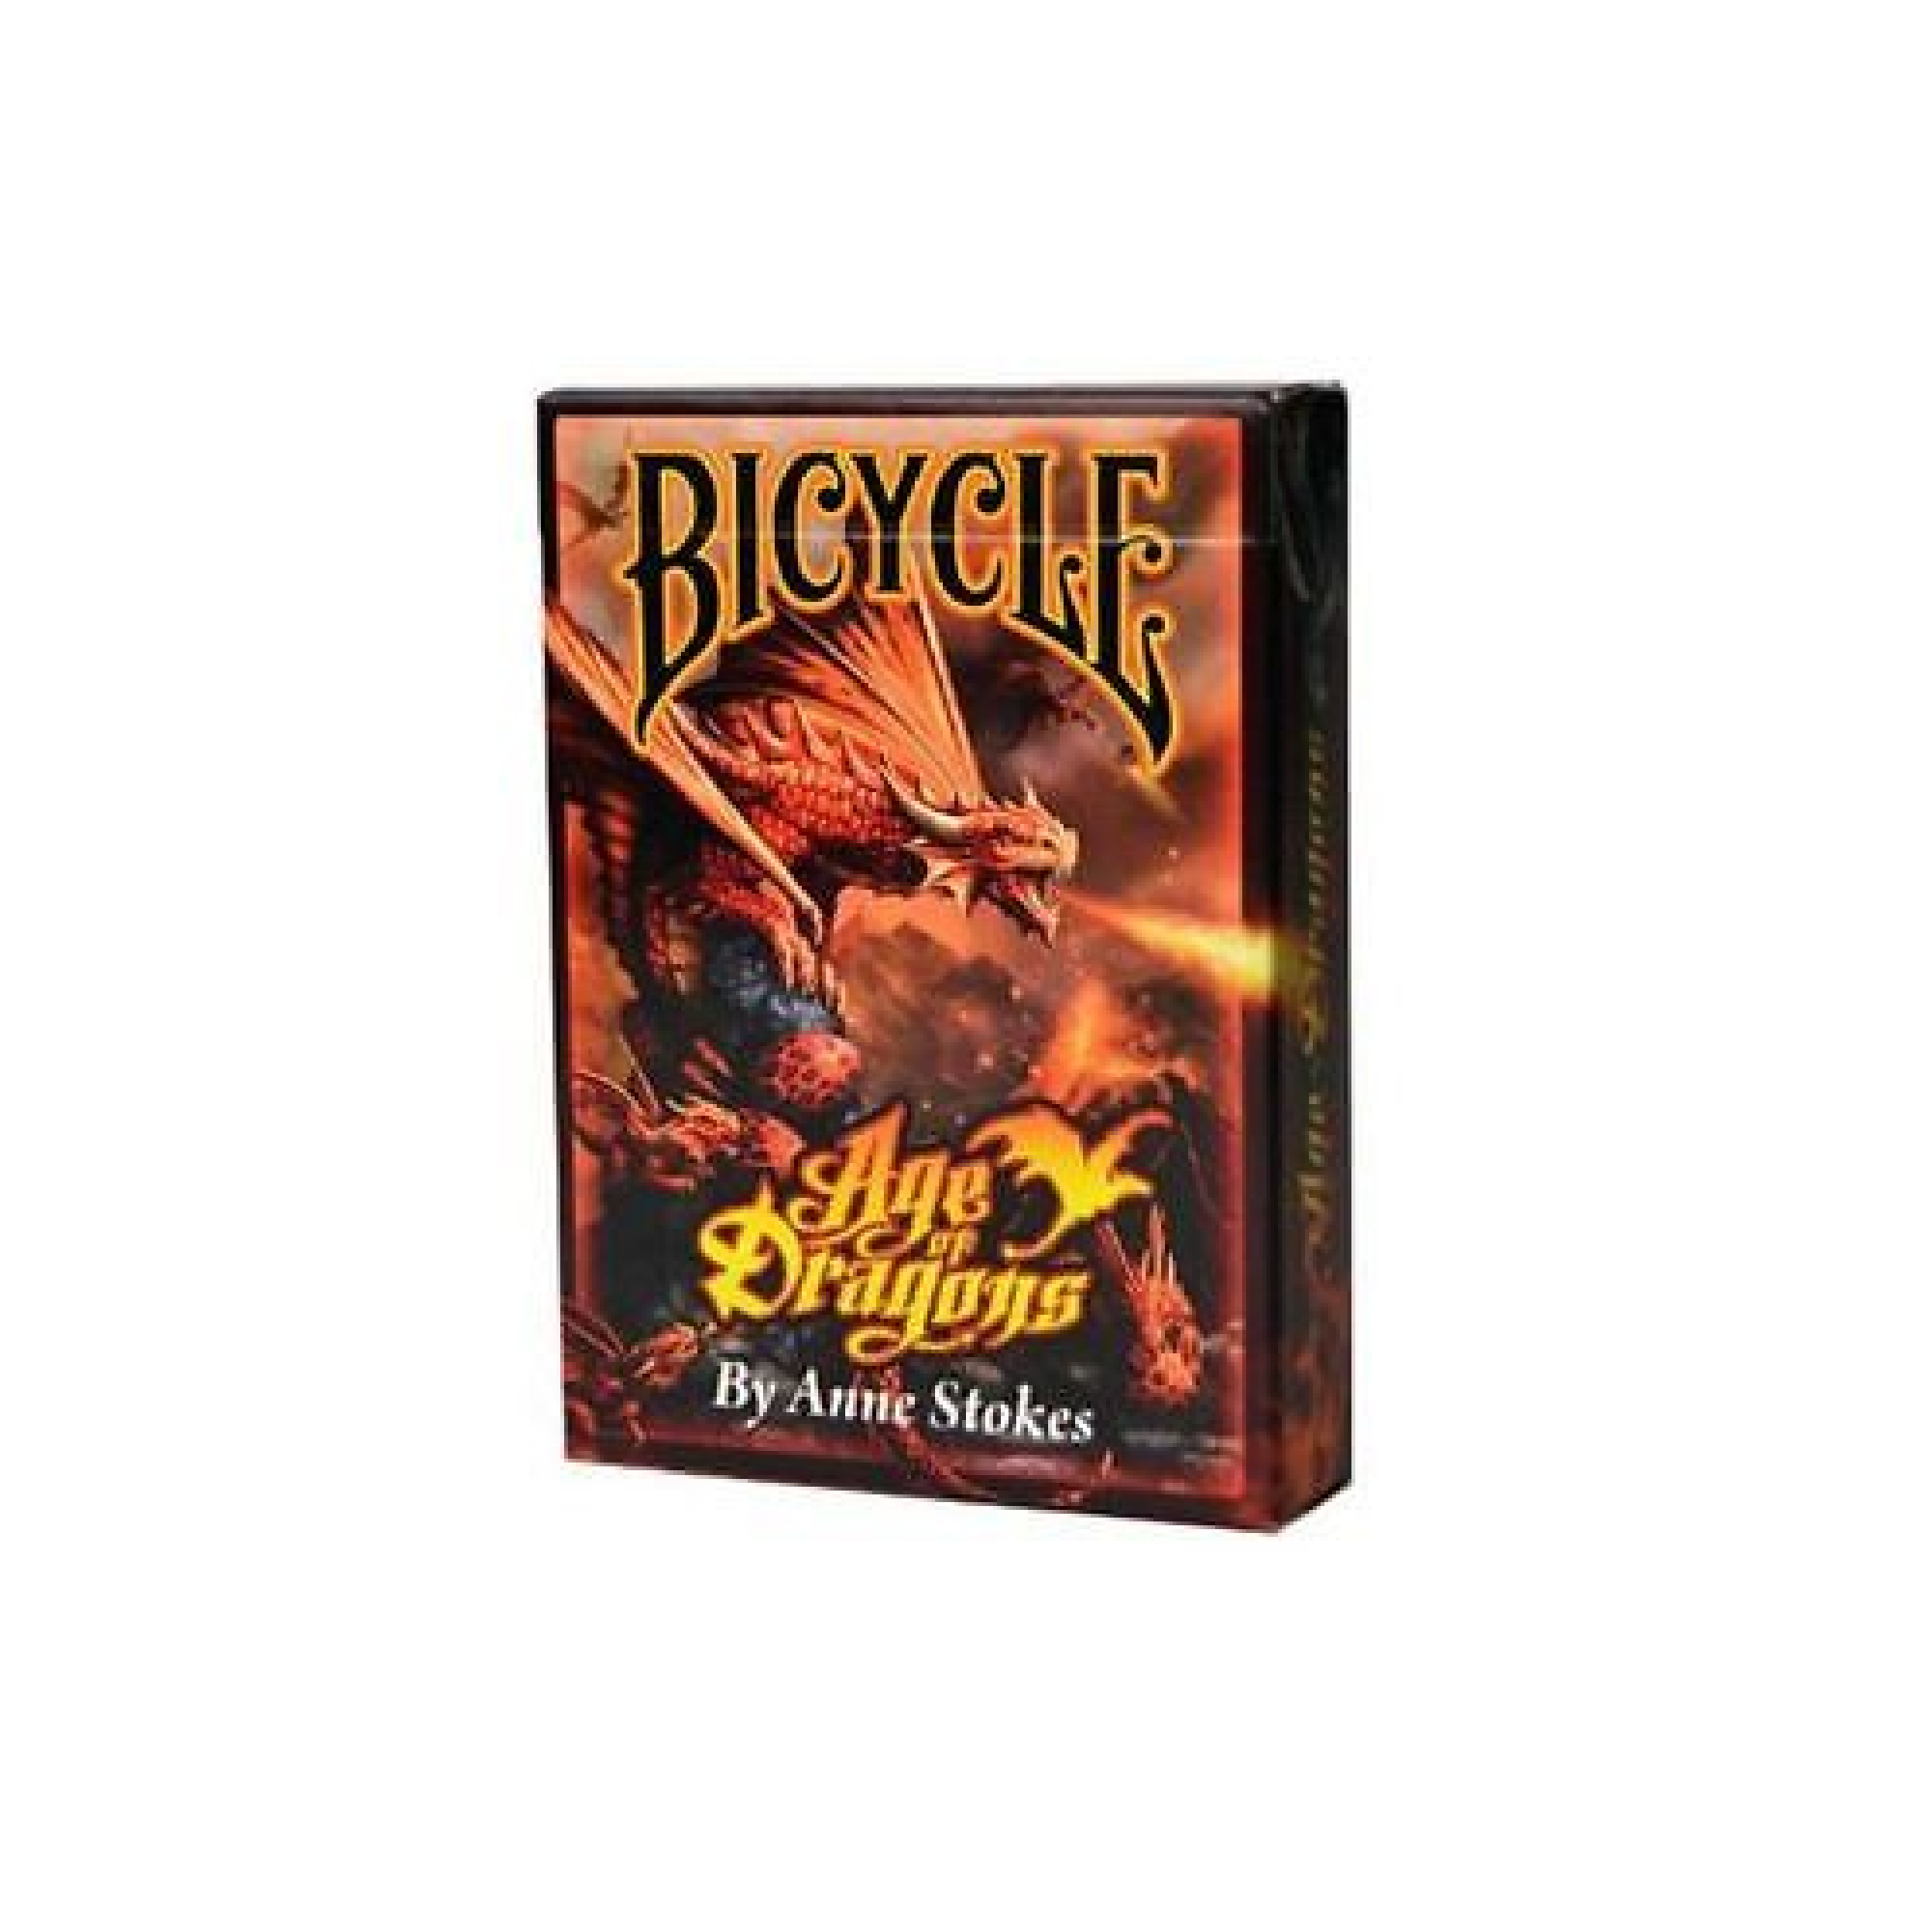 Bicycle Biclycle Deck Age of Dragons - Anne Stoke